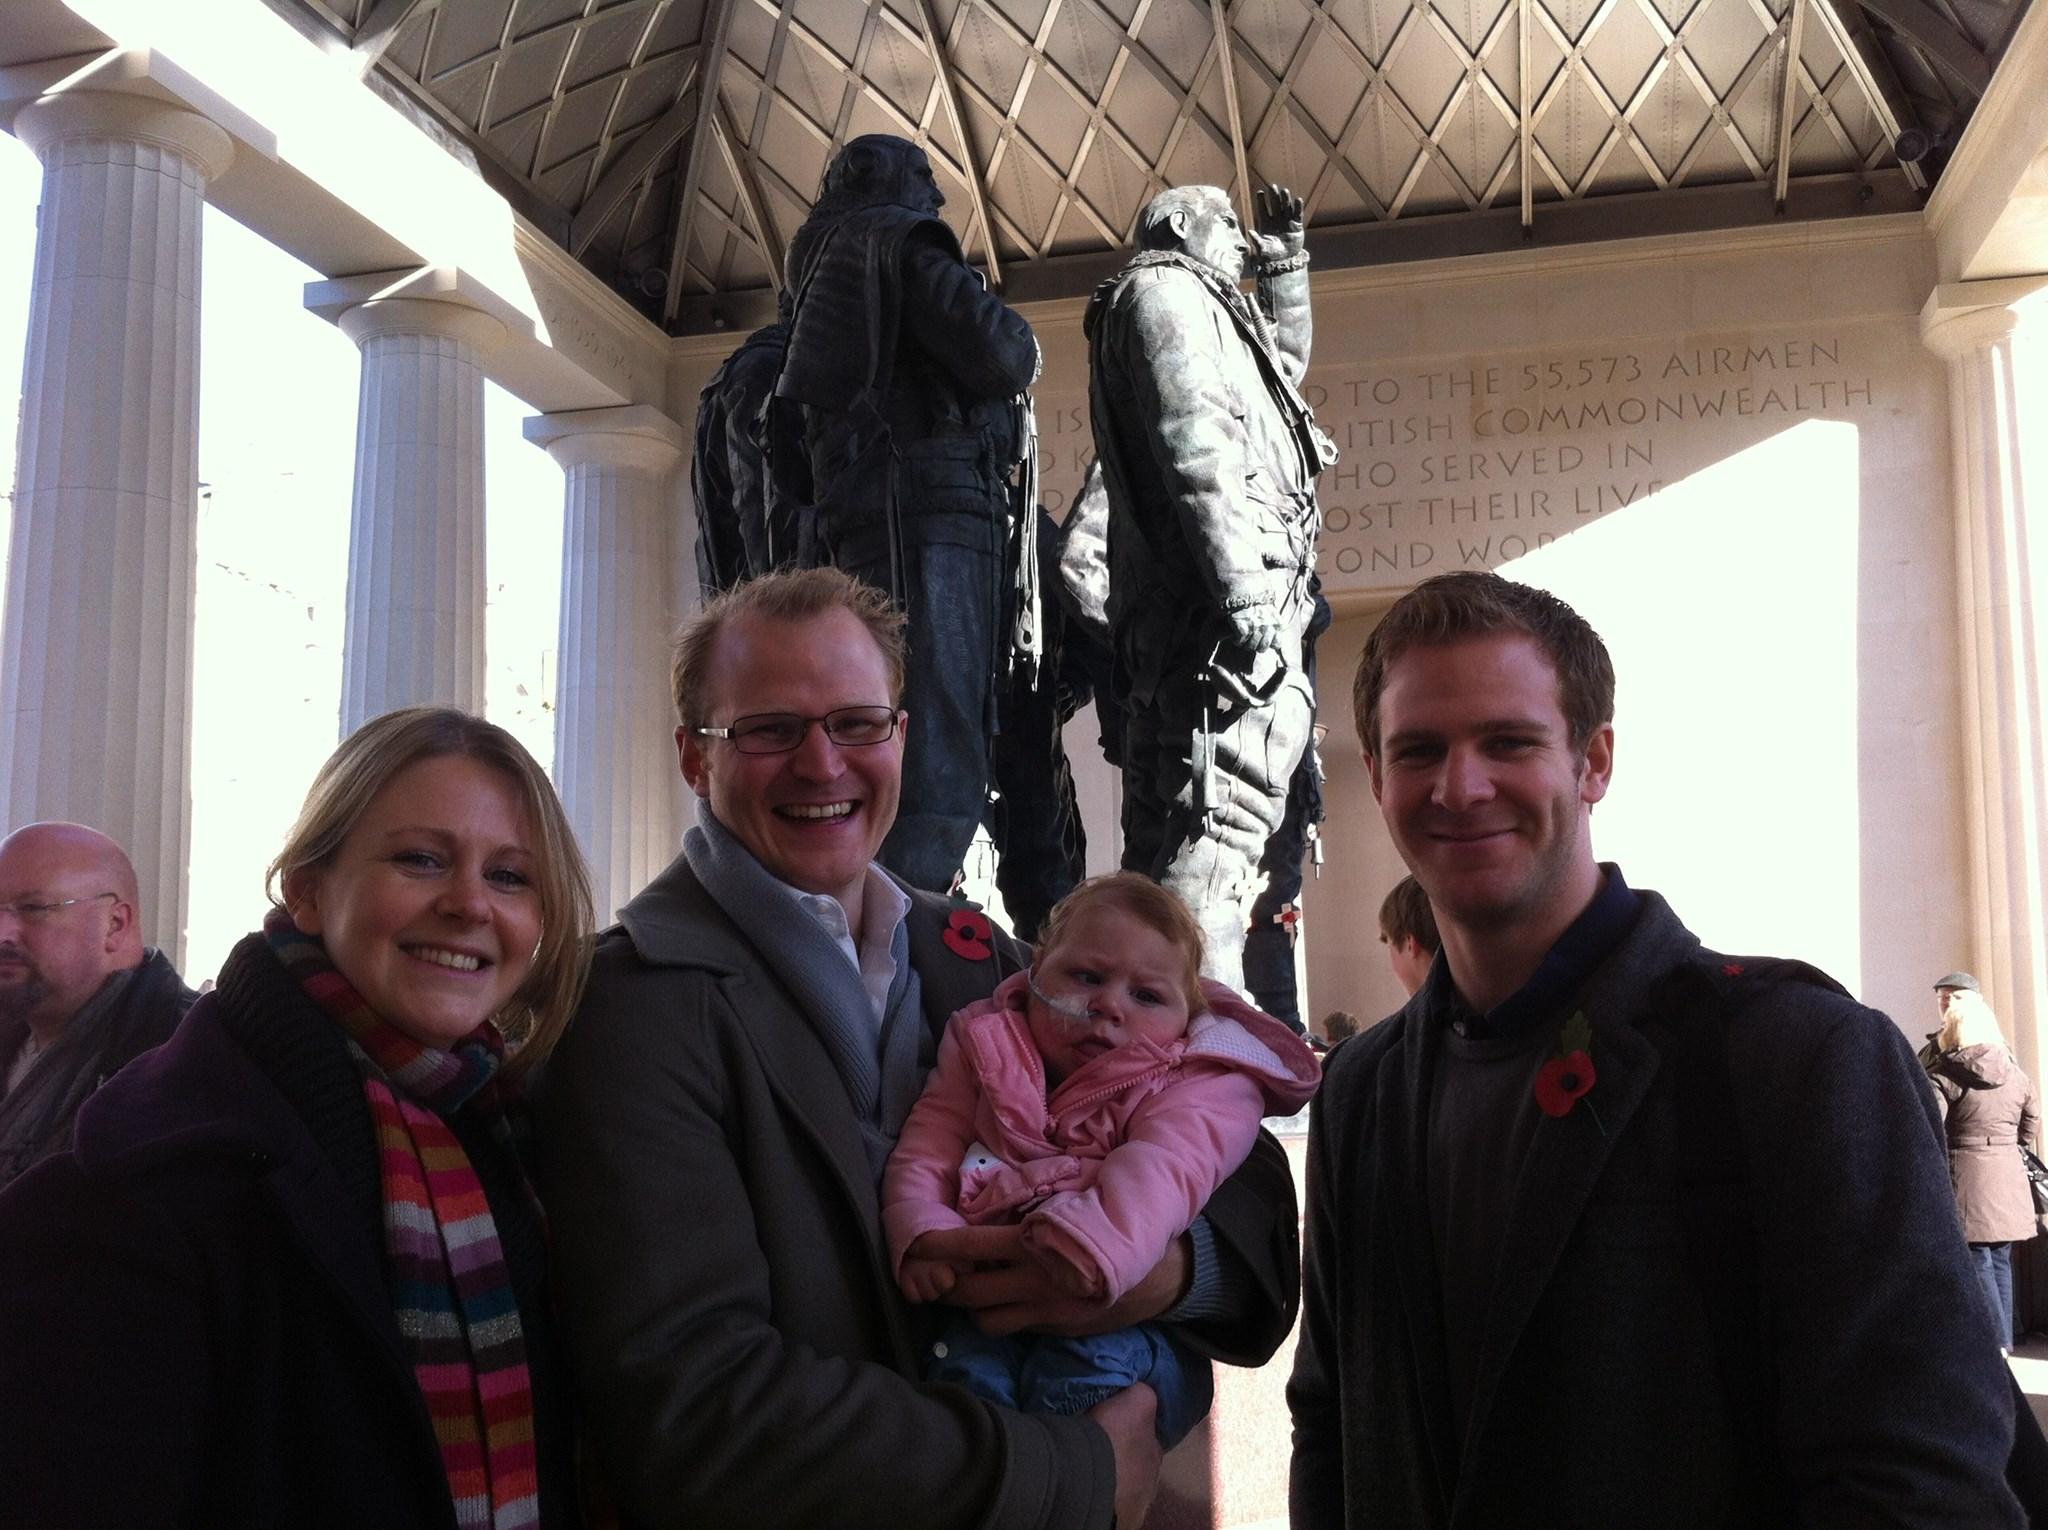 Visiting Bomber Command Memorial on Remembrance Sunday